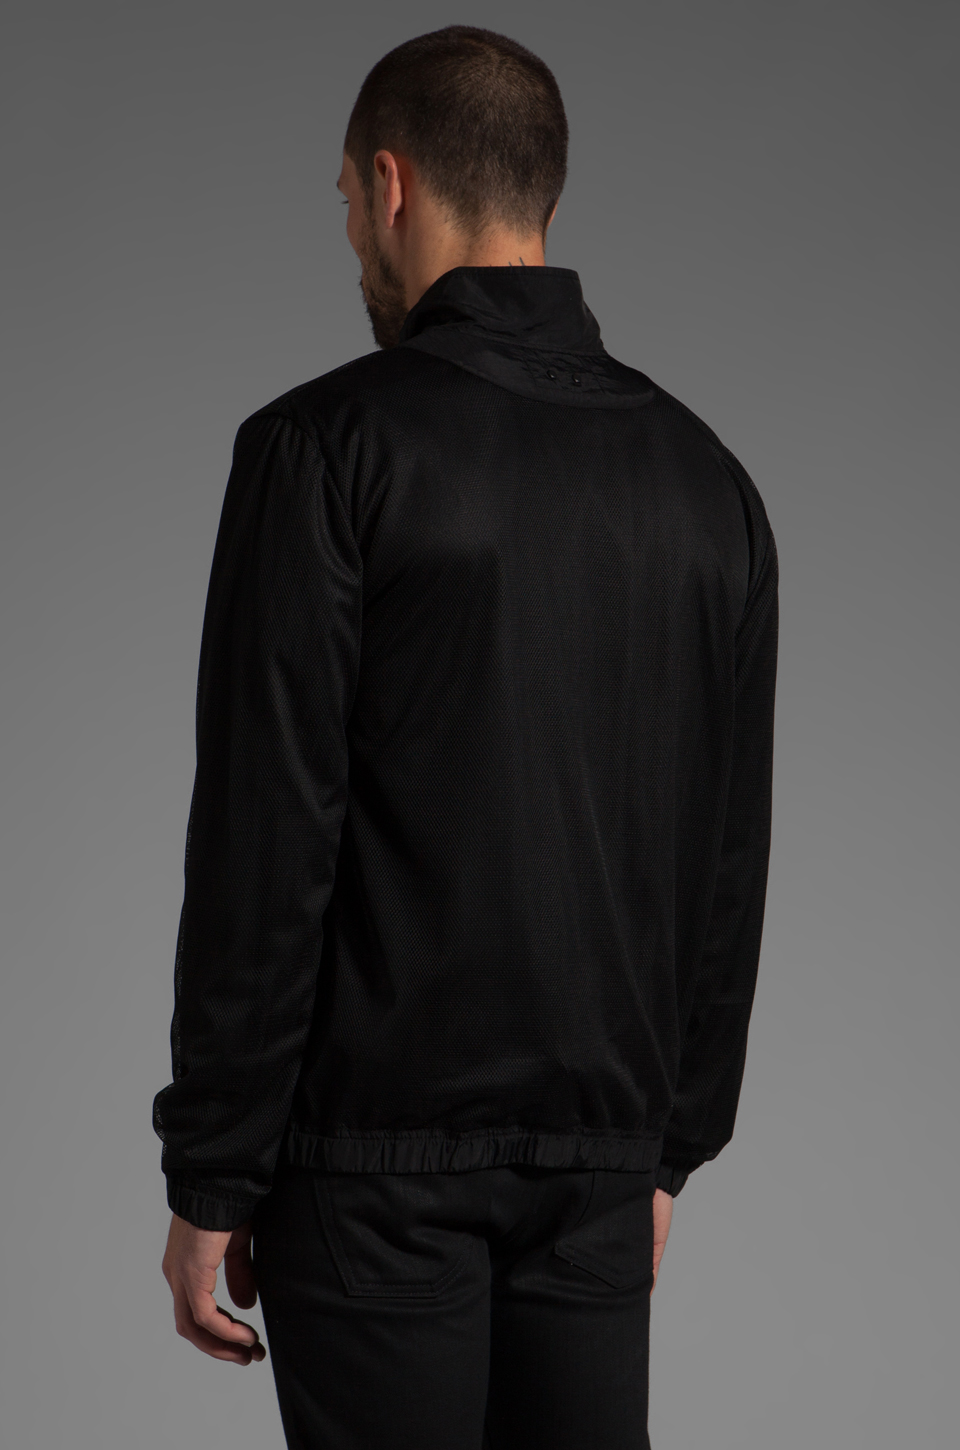 T by Alexander Wang Swim Nylon Mesh Inside Out Jacket in Black